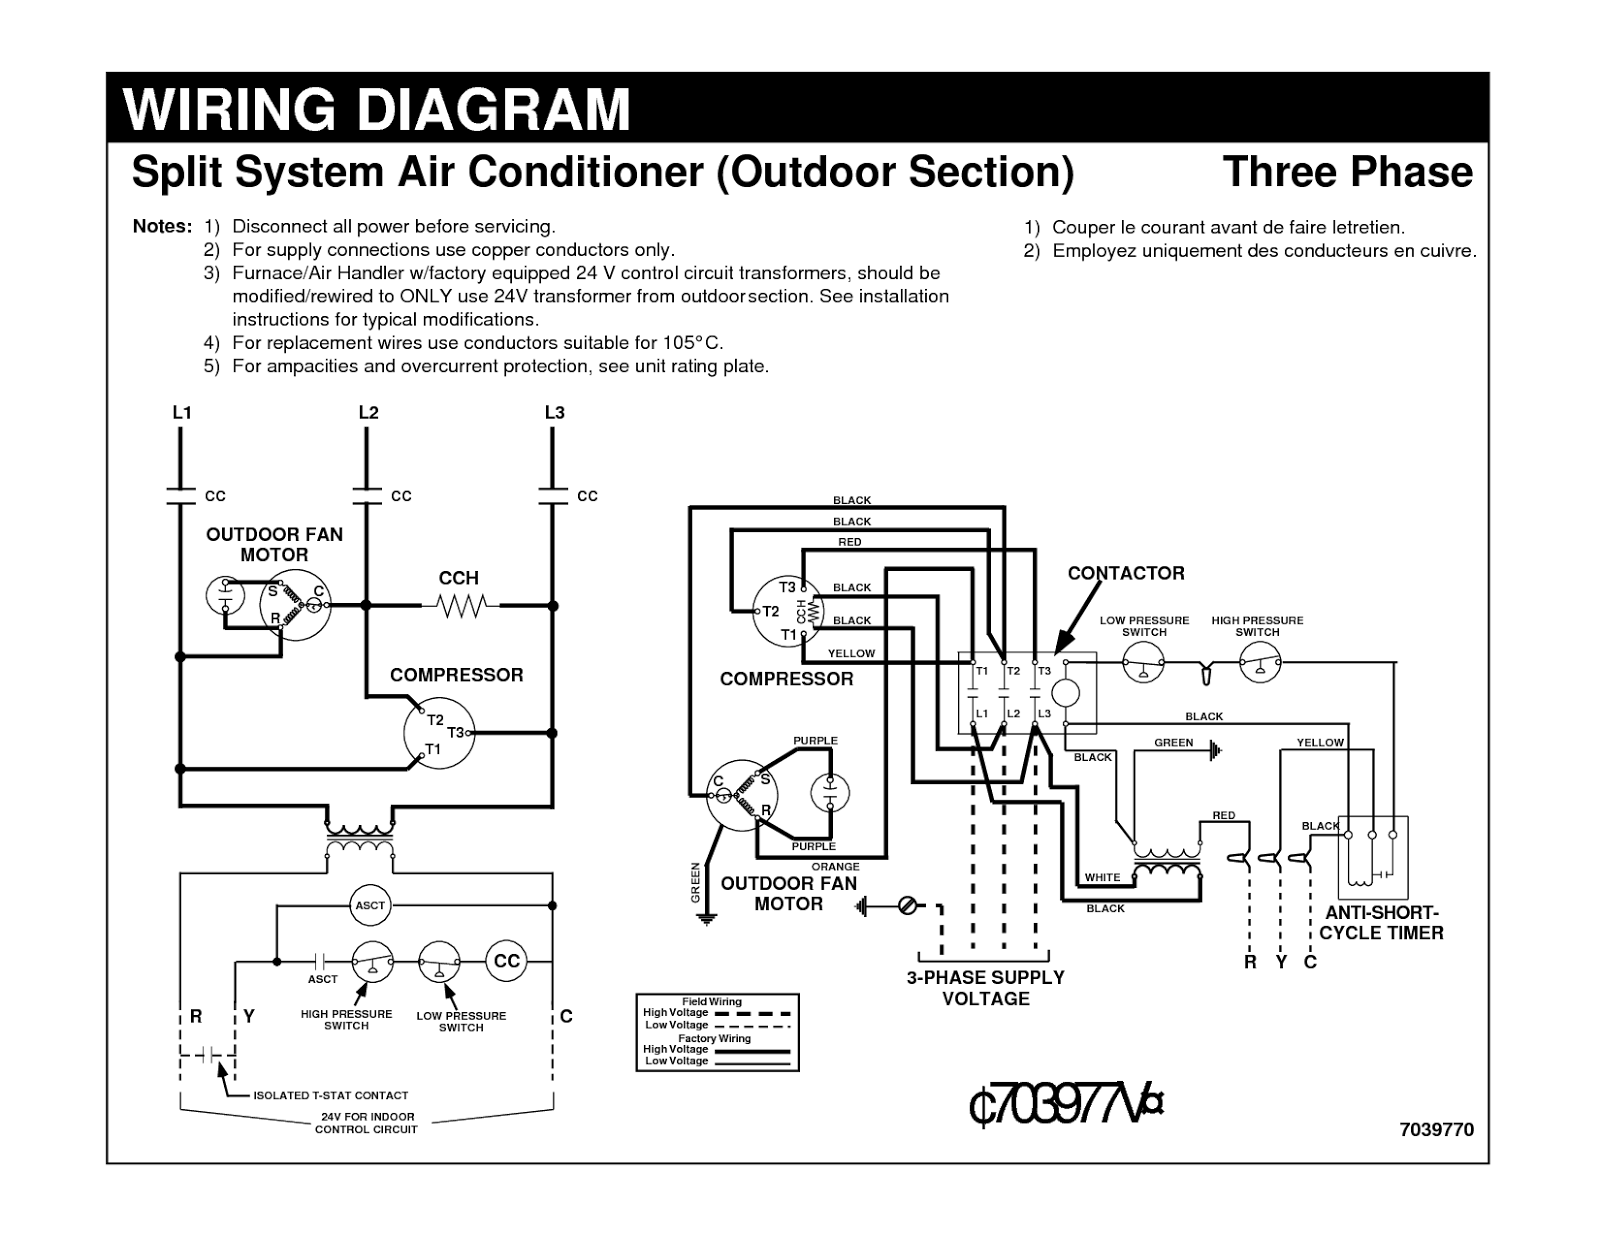 Wiring Diagram Symbols  monly Wiring additionally RepairGuideContent as well 535506211918107247 also Renewable Energy System In Your Rv Or Boat A69 furthermore Best 10 Club Car Wiring Diagram Download Tutorial 99 Club Car Gas Wiring Diagram. on understanding home fuse box